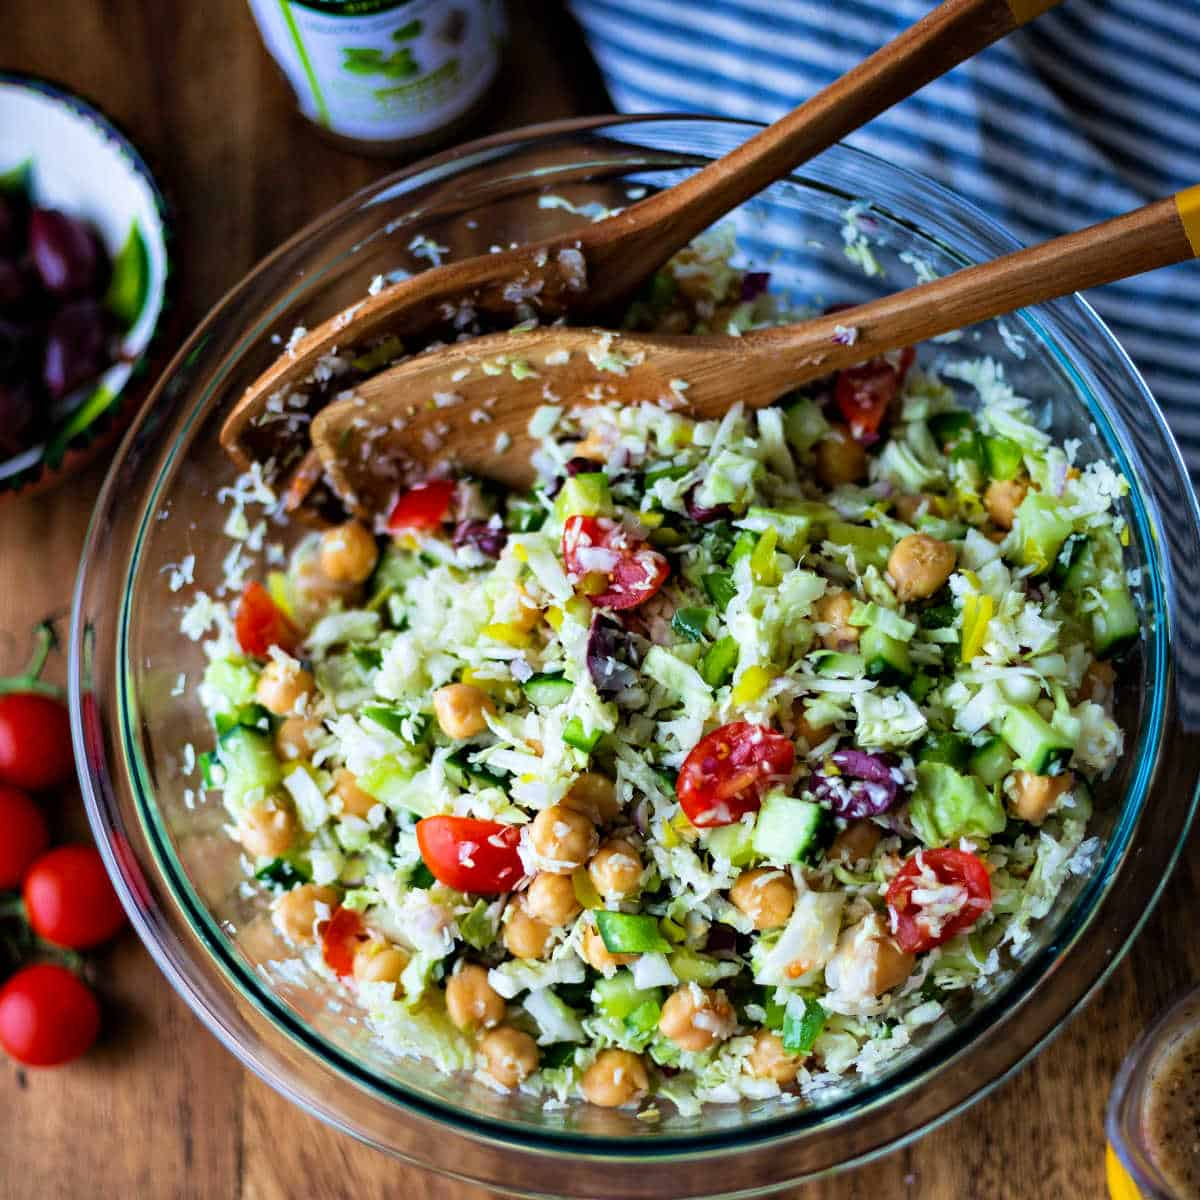 tossing healthy greek coleslaw with salad spoons